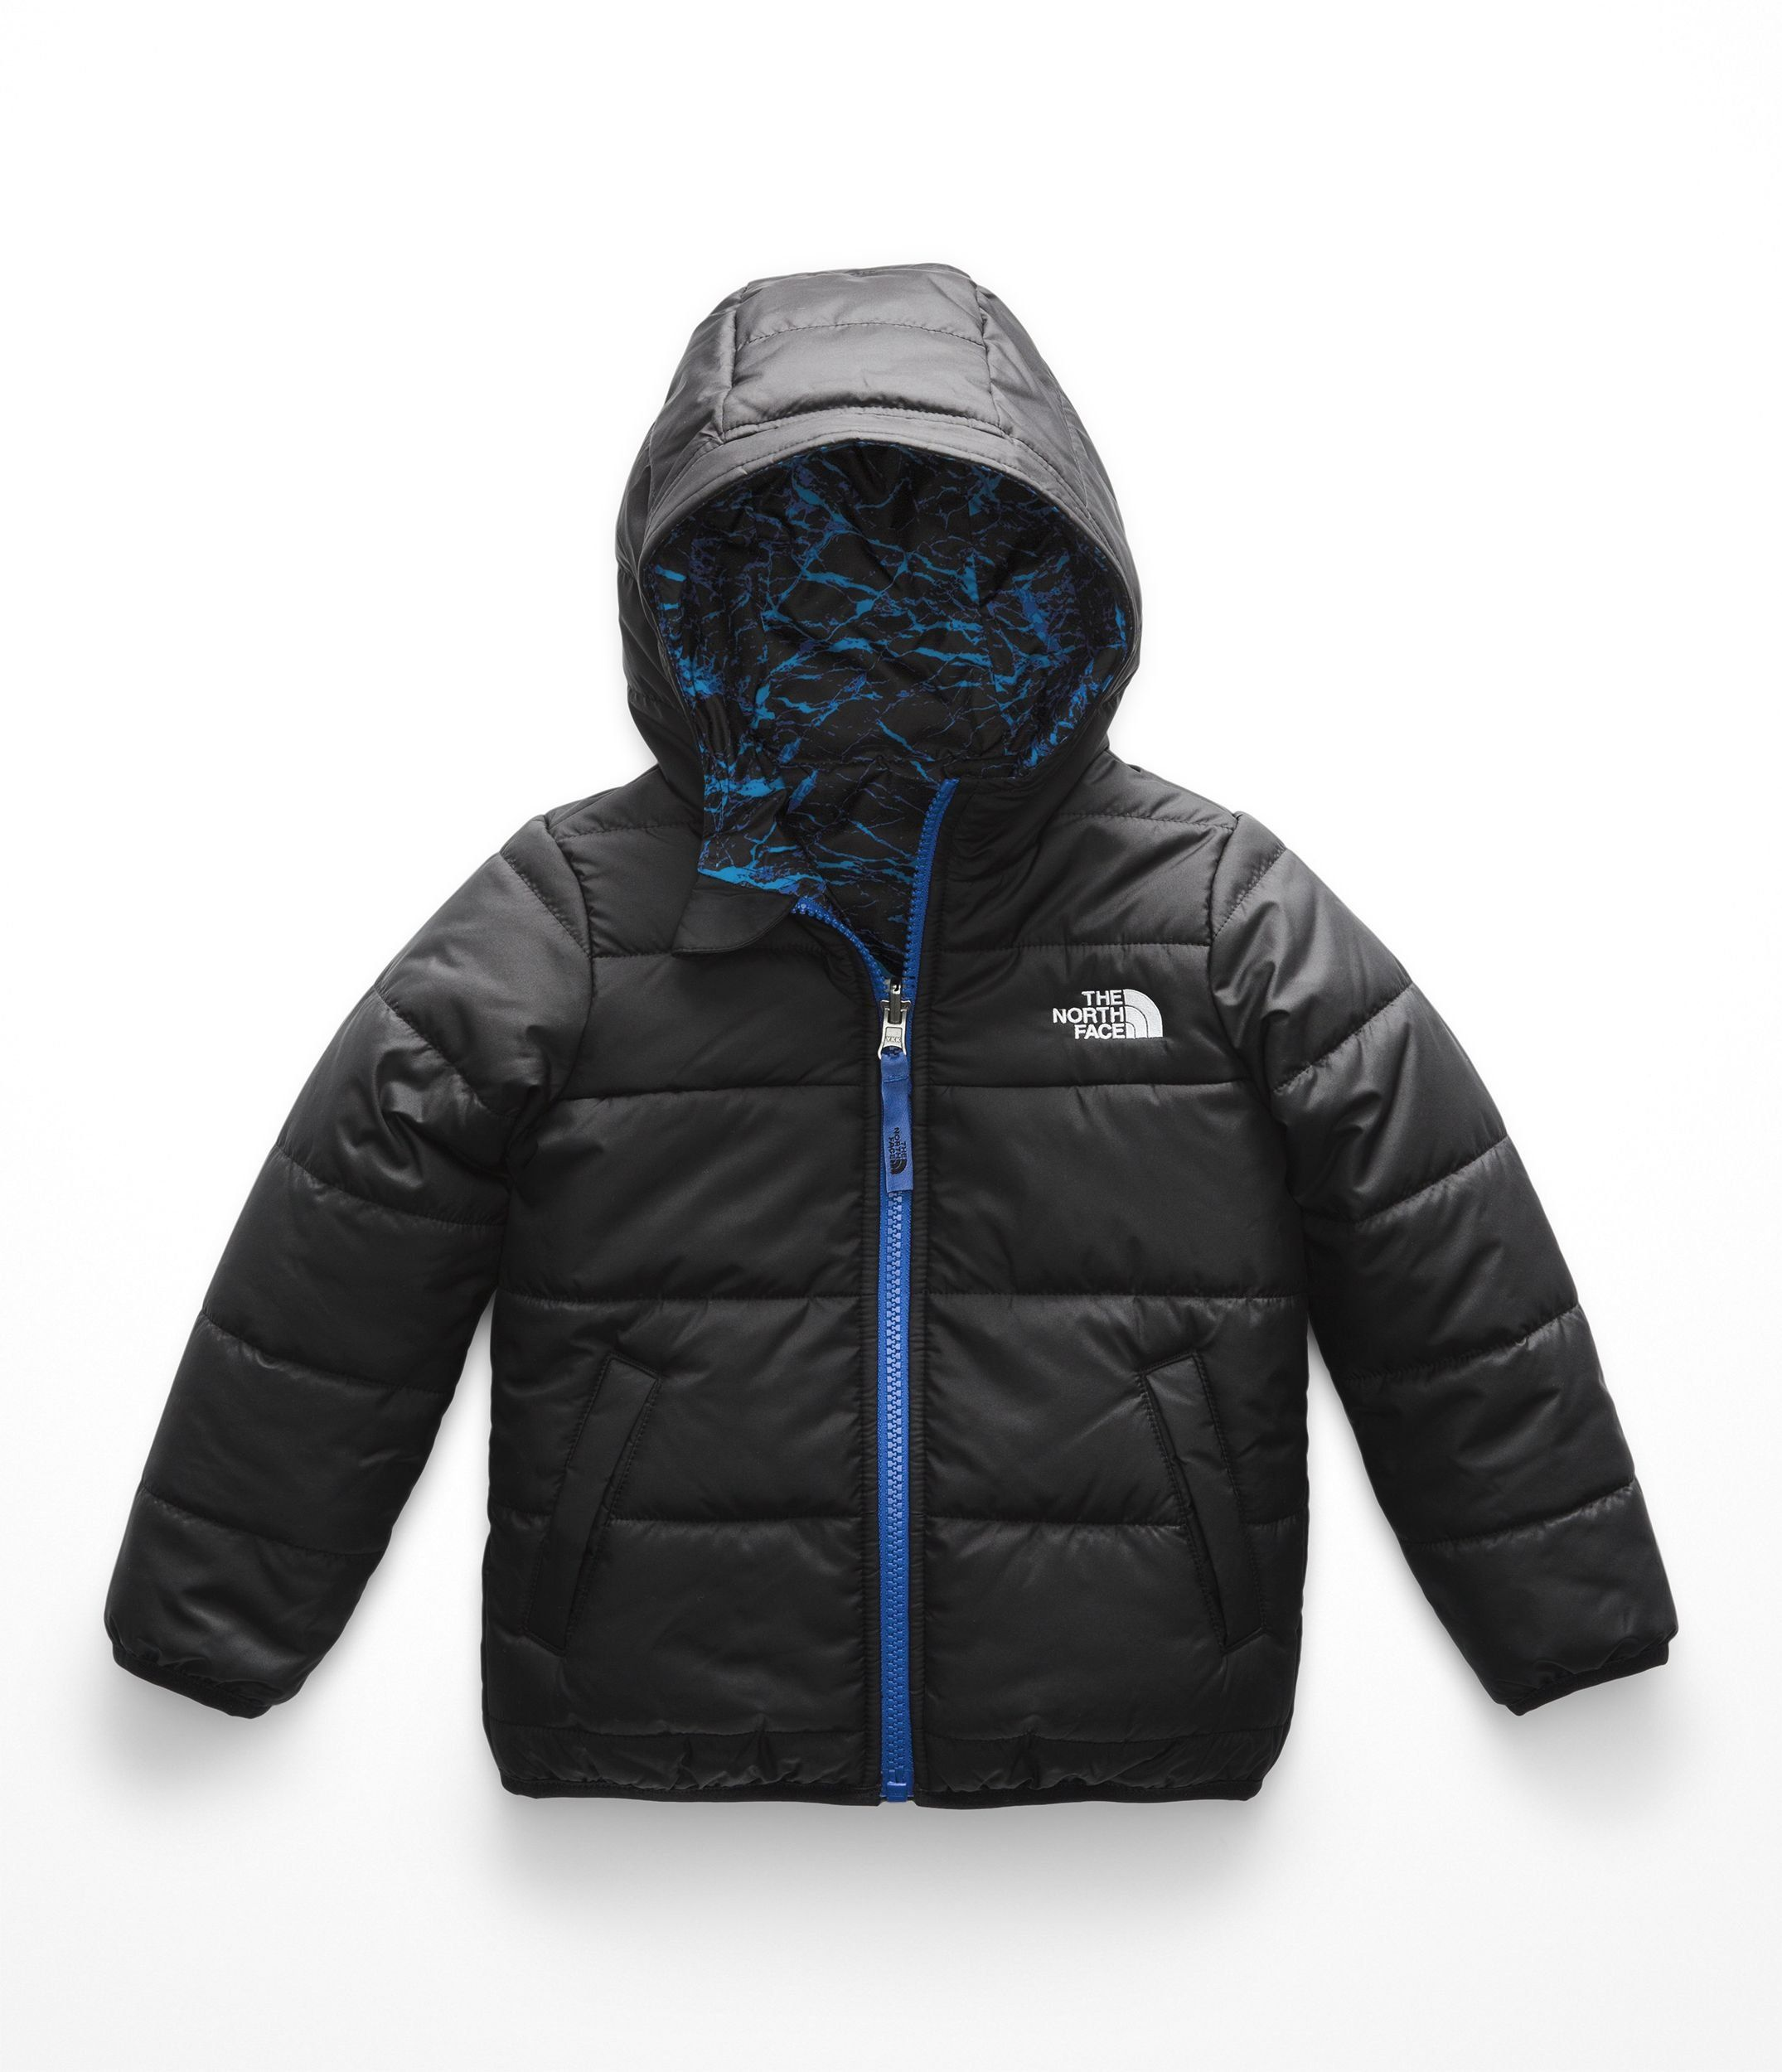 The North Face Toddler Boys Reversible Perrito Jacket Tnf Black 2t To Check Out Furth North Face Hooded Jacket Trendy Baby Girl Clothes Trendy Baby Clothes [ 2500 x 2150 Pixel ]